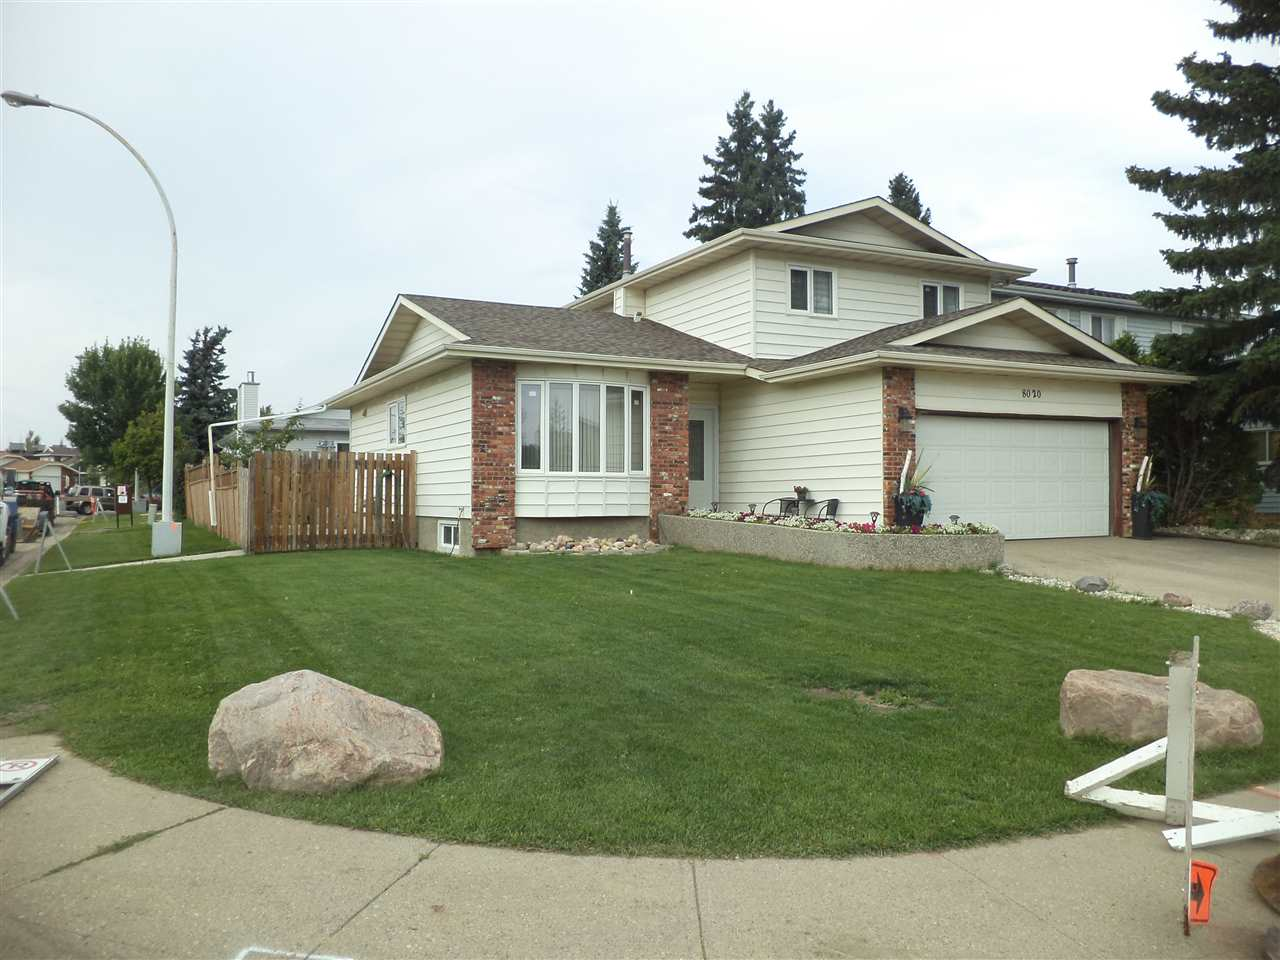 MLS® listing #E4170547 for sale located at 8020 157 Avenue